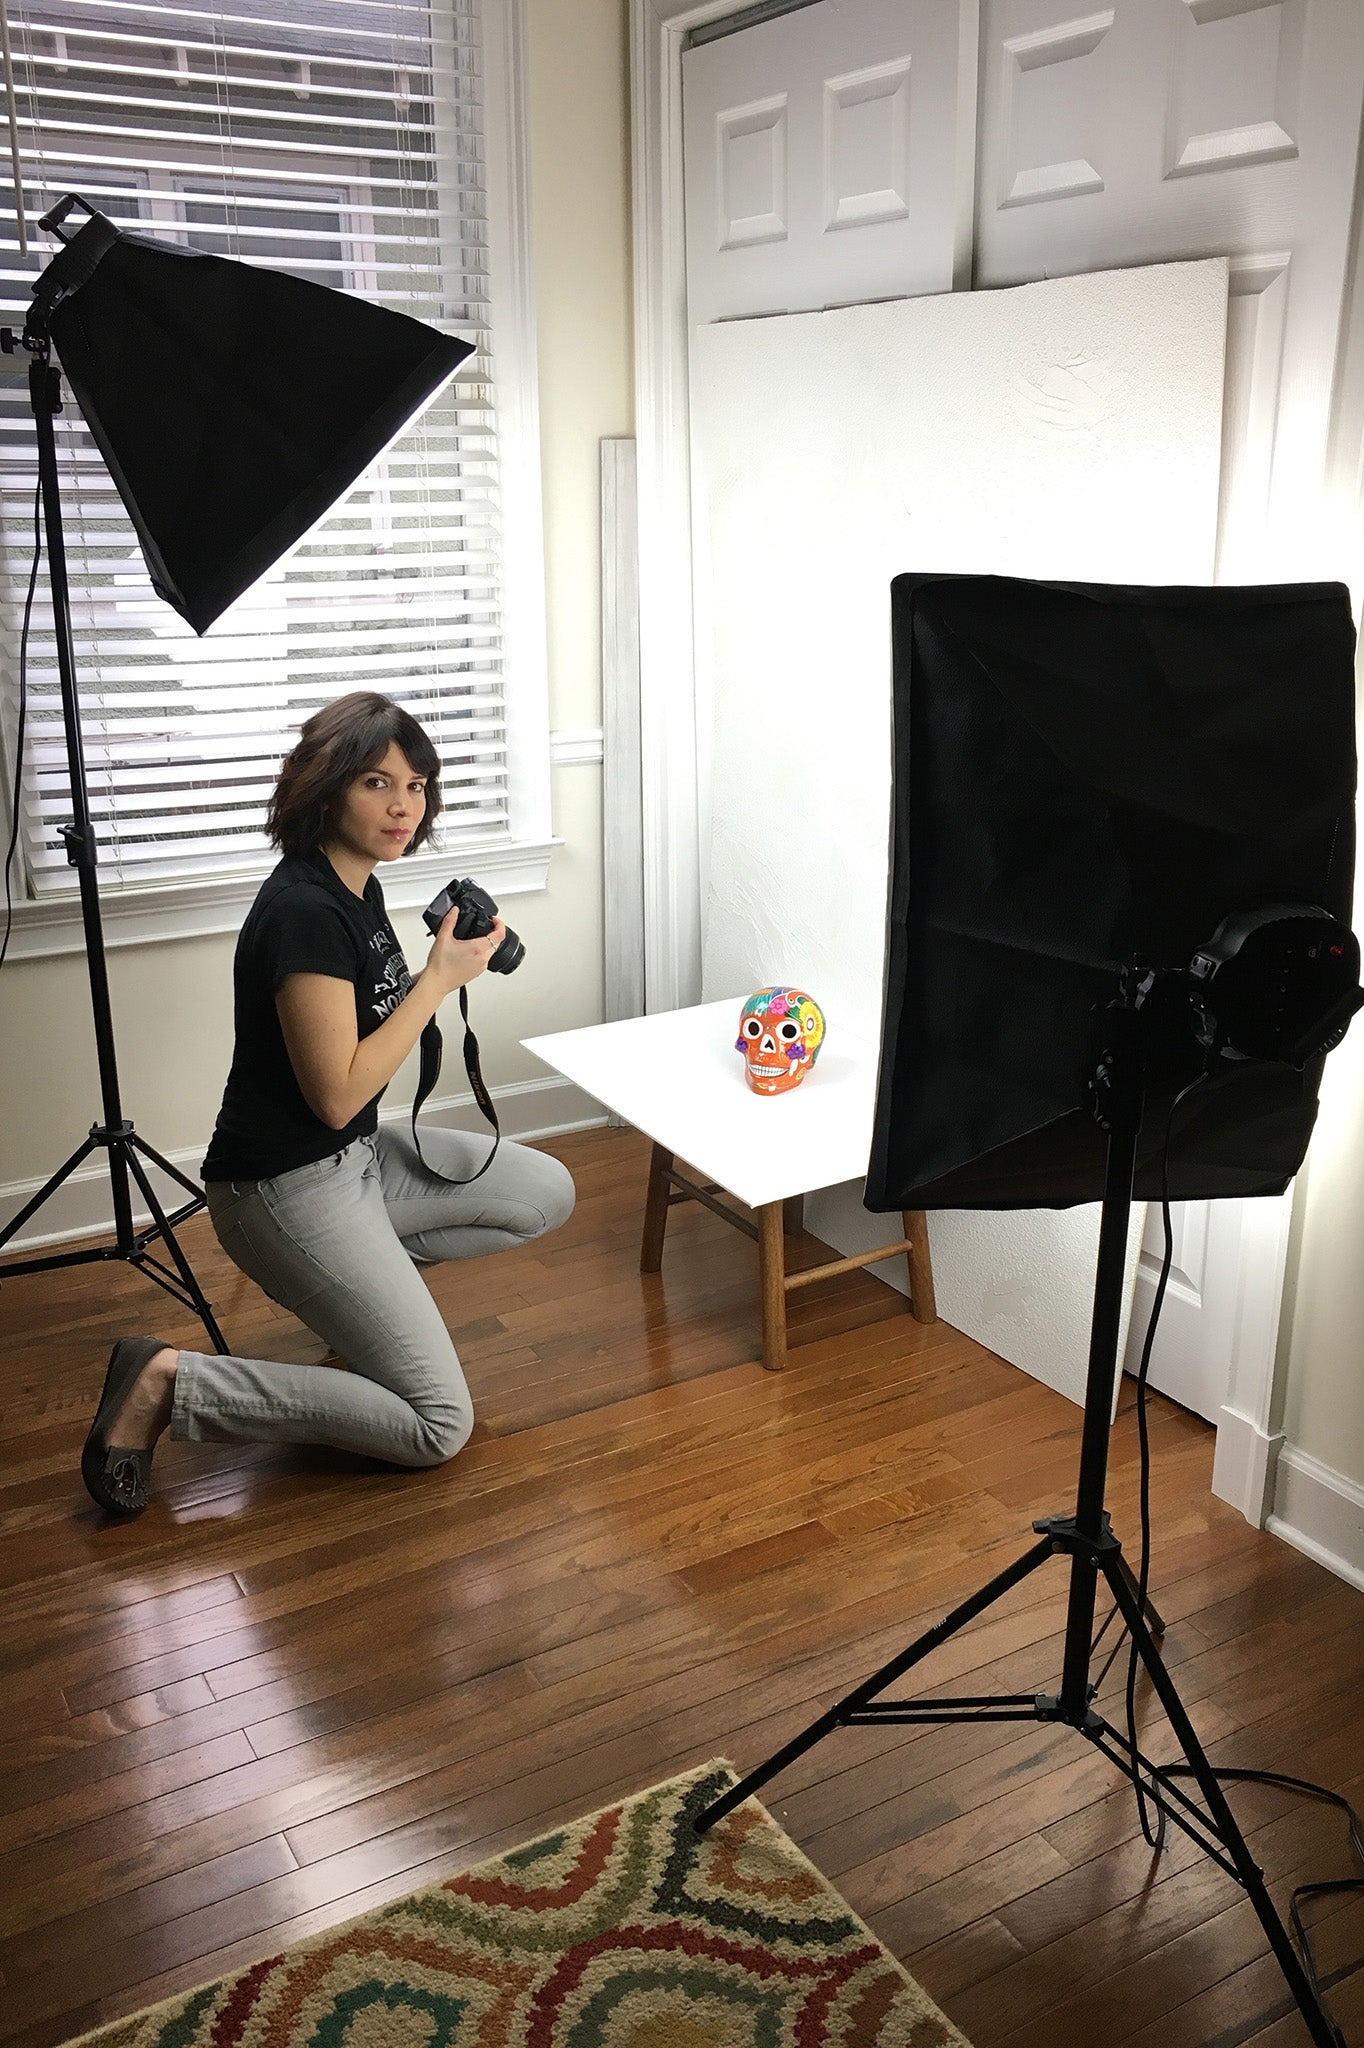 ShopMucho.com about me page photo of owner Angelique shooting products behind the scenes